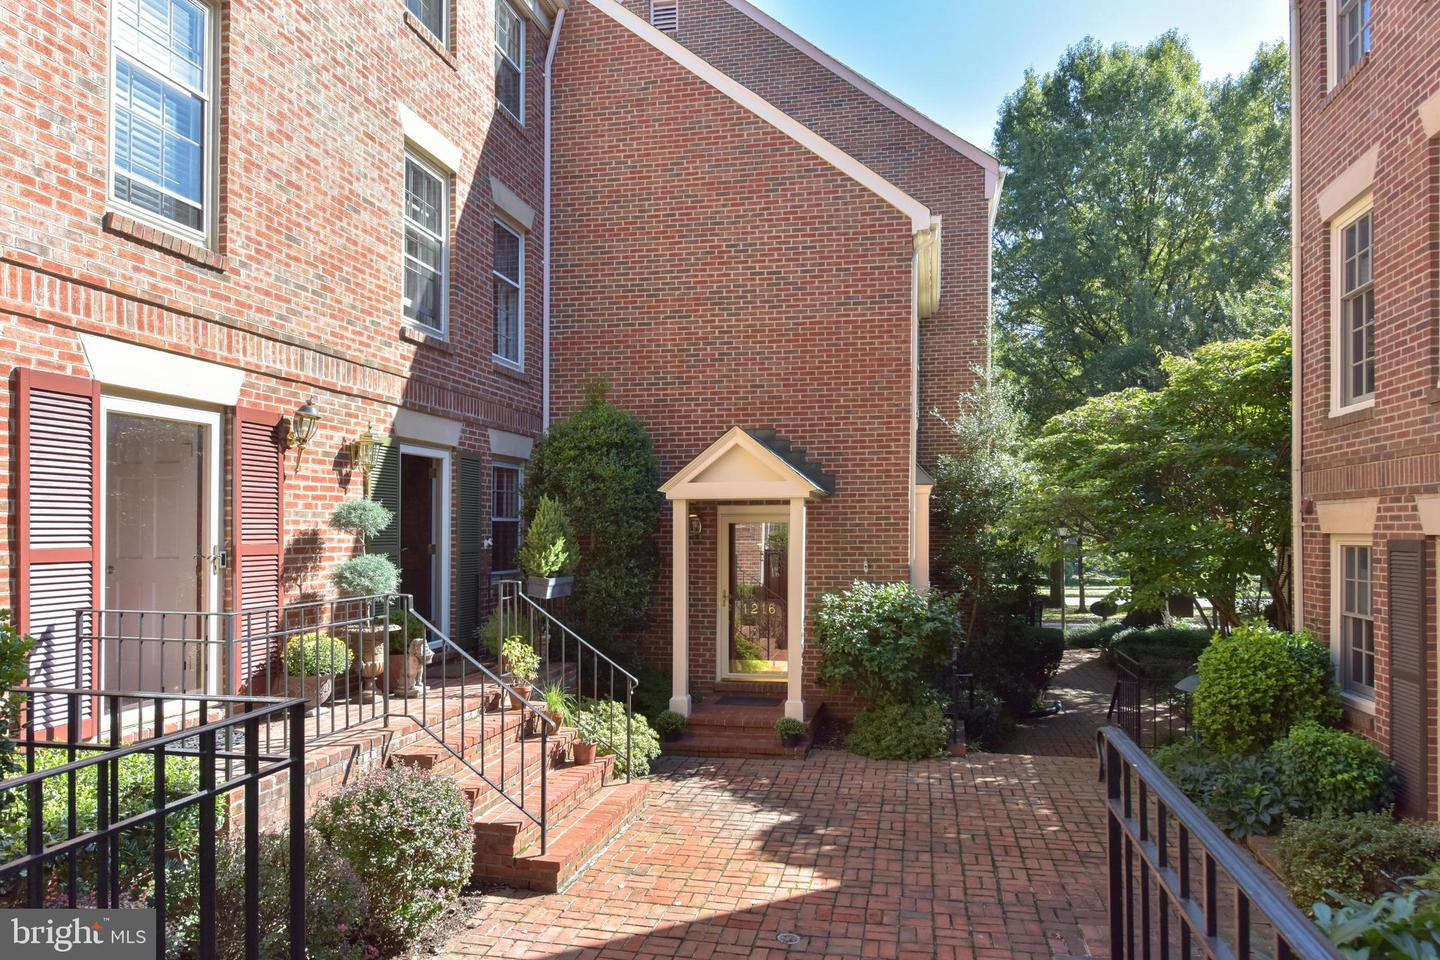 1216 Abingdon Drive   - Alexandria, Virginia 22314